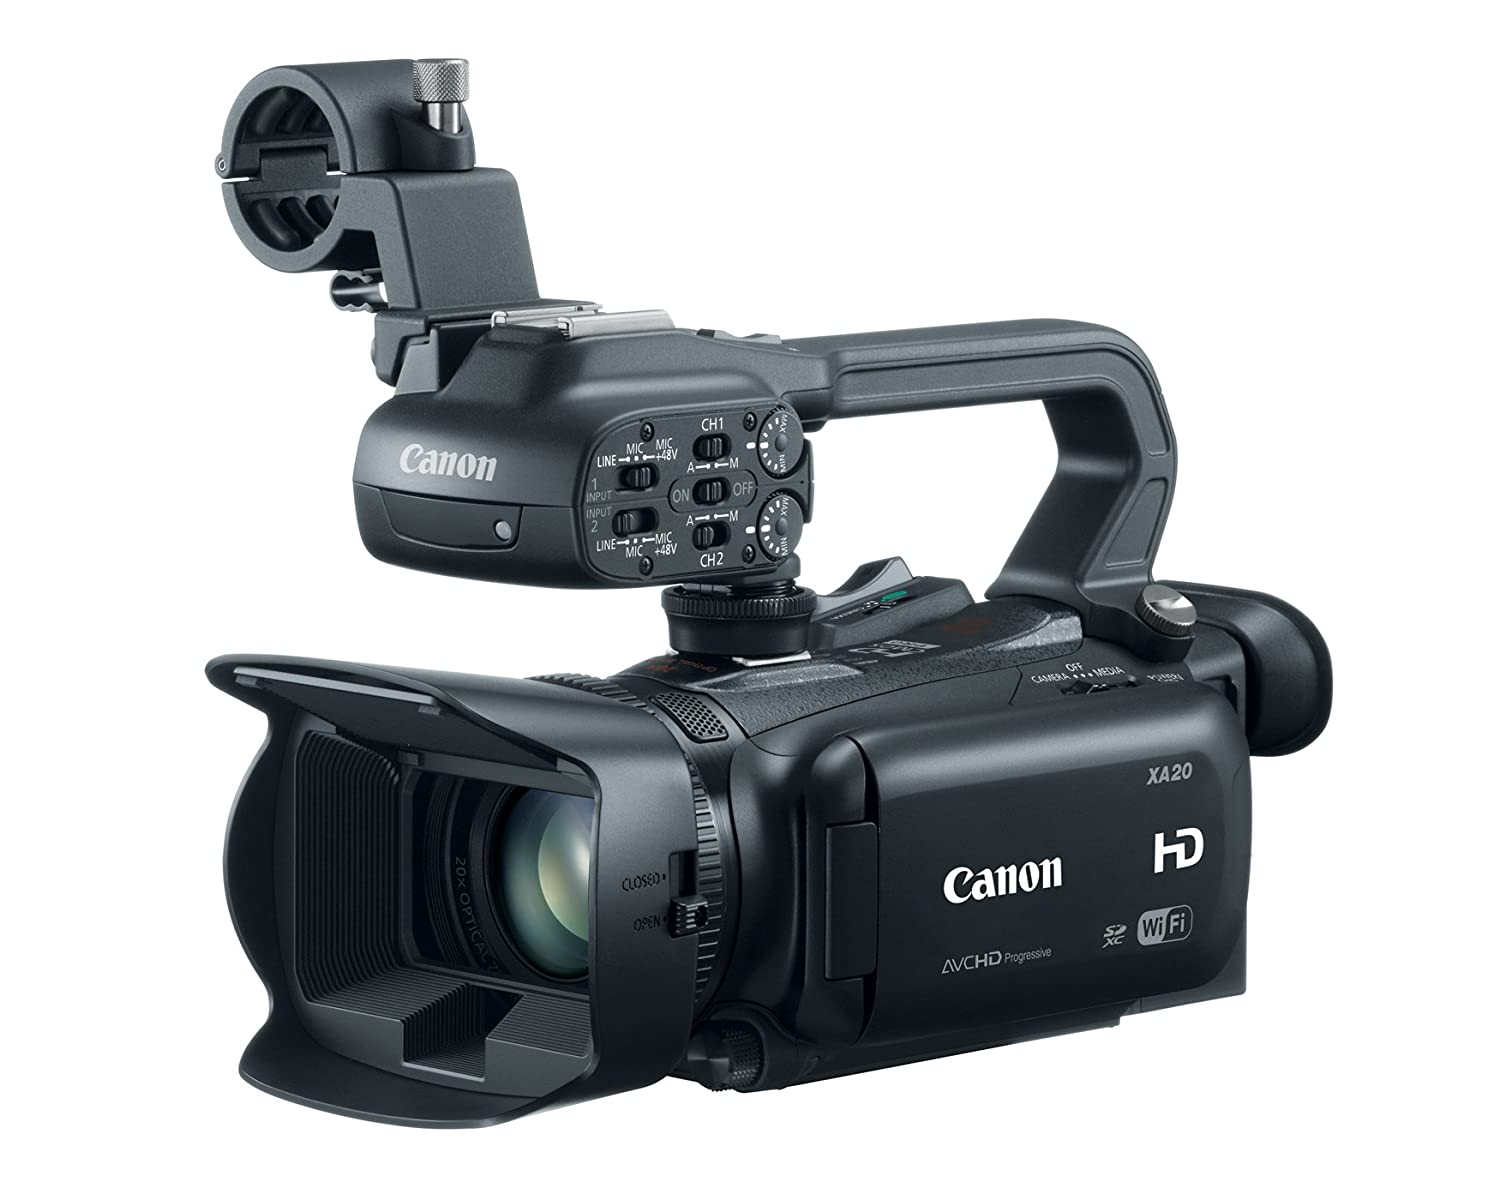 Top 10 Best Professional Camcorders (2020 Reviews & Buying Guide) 3